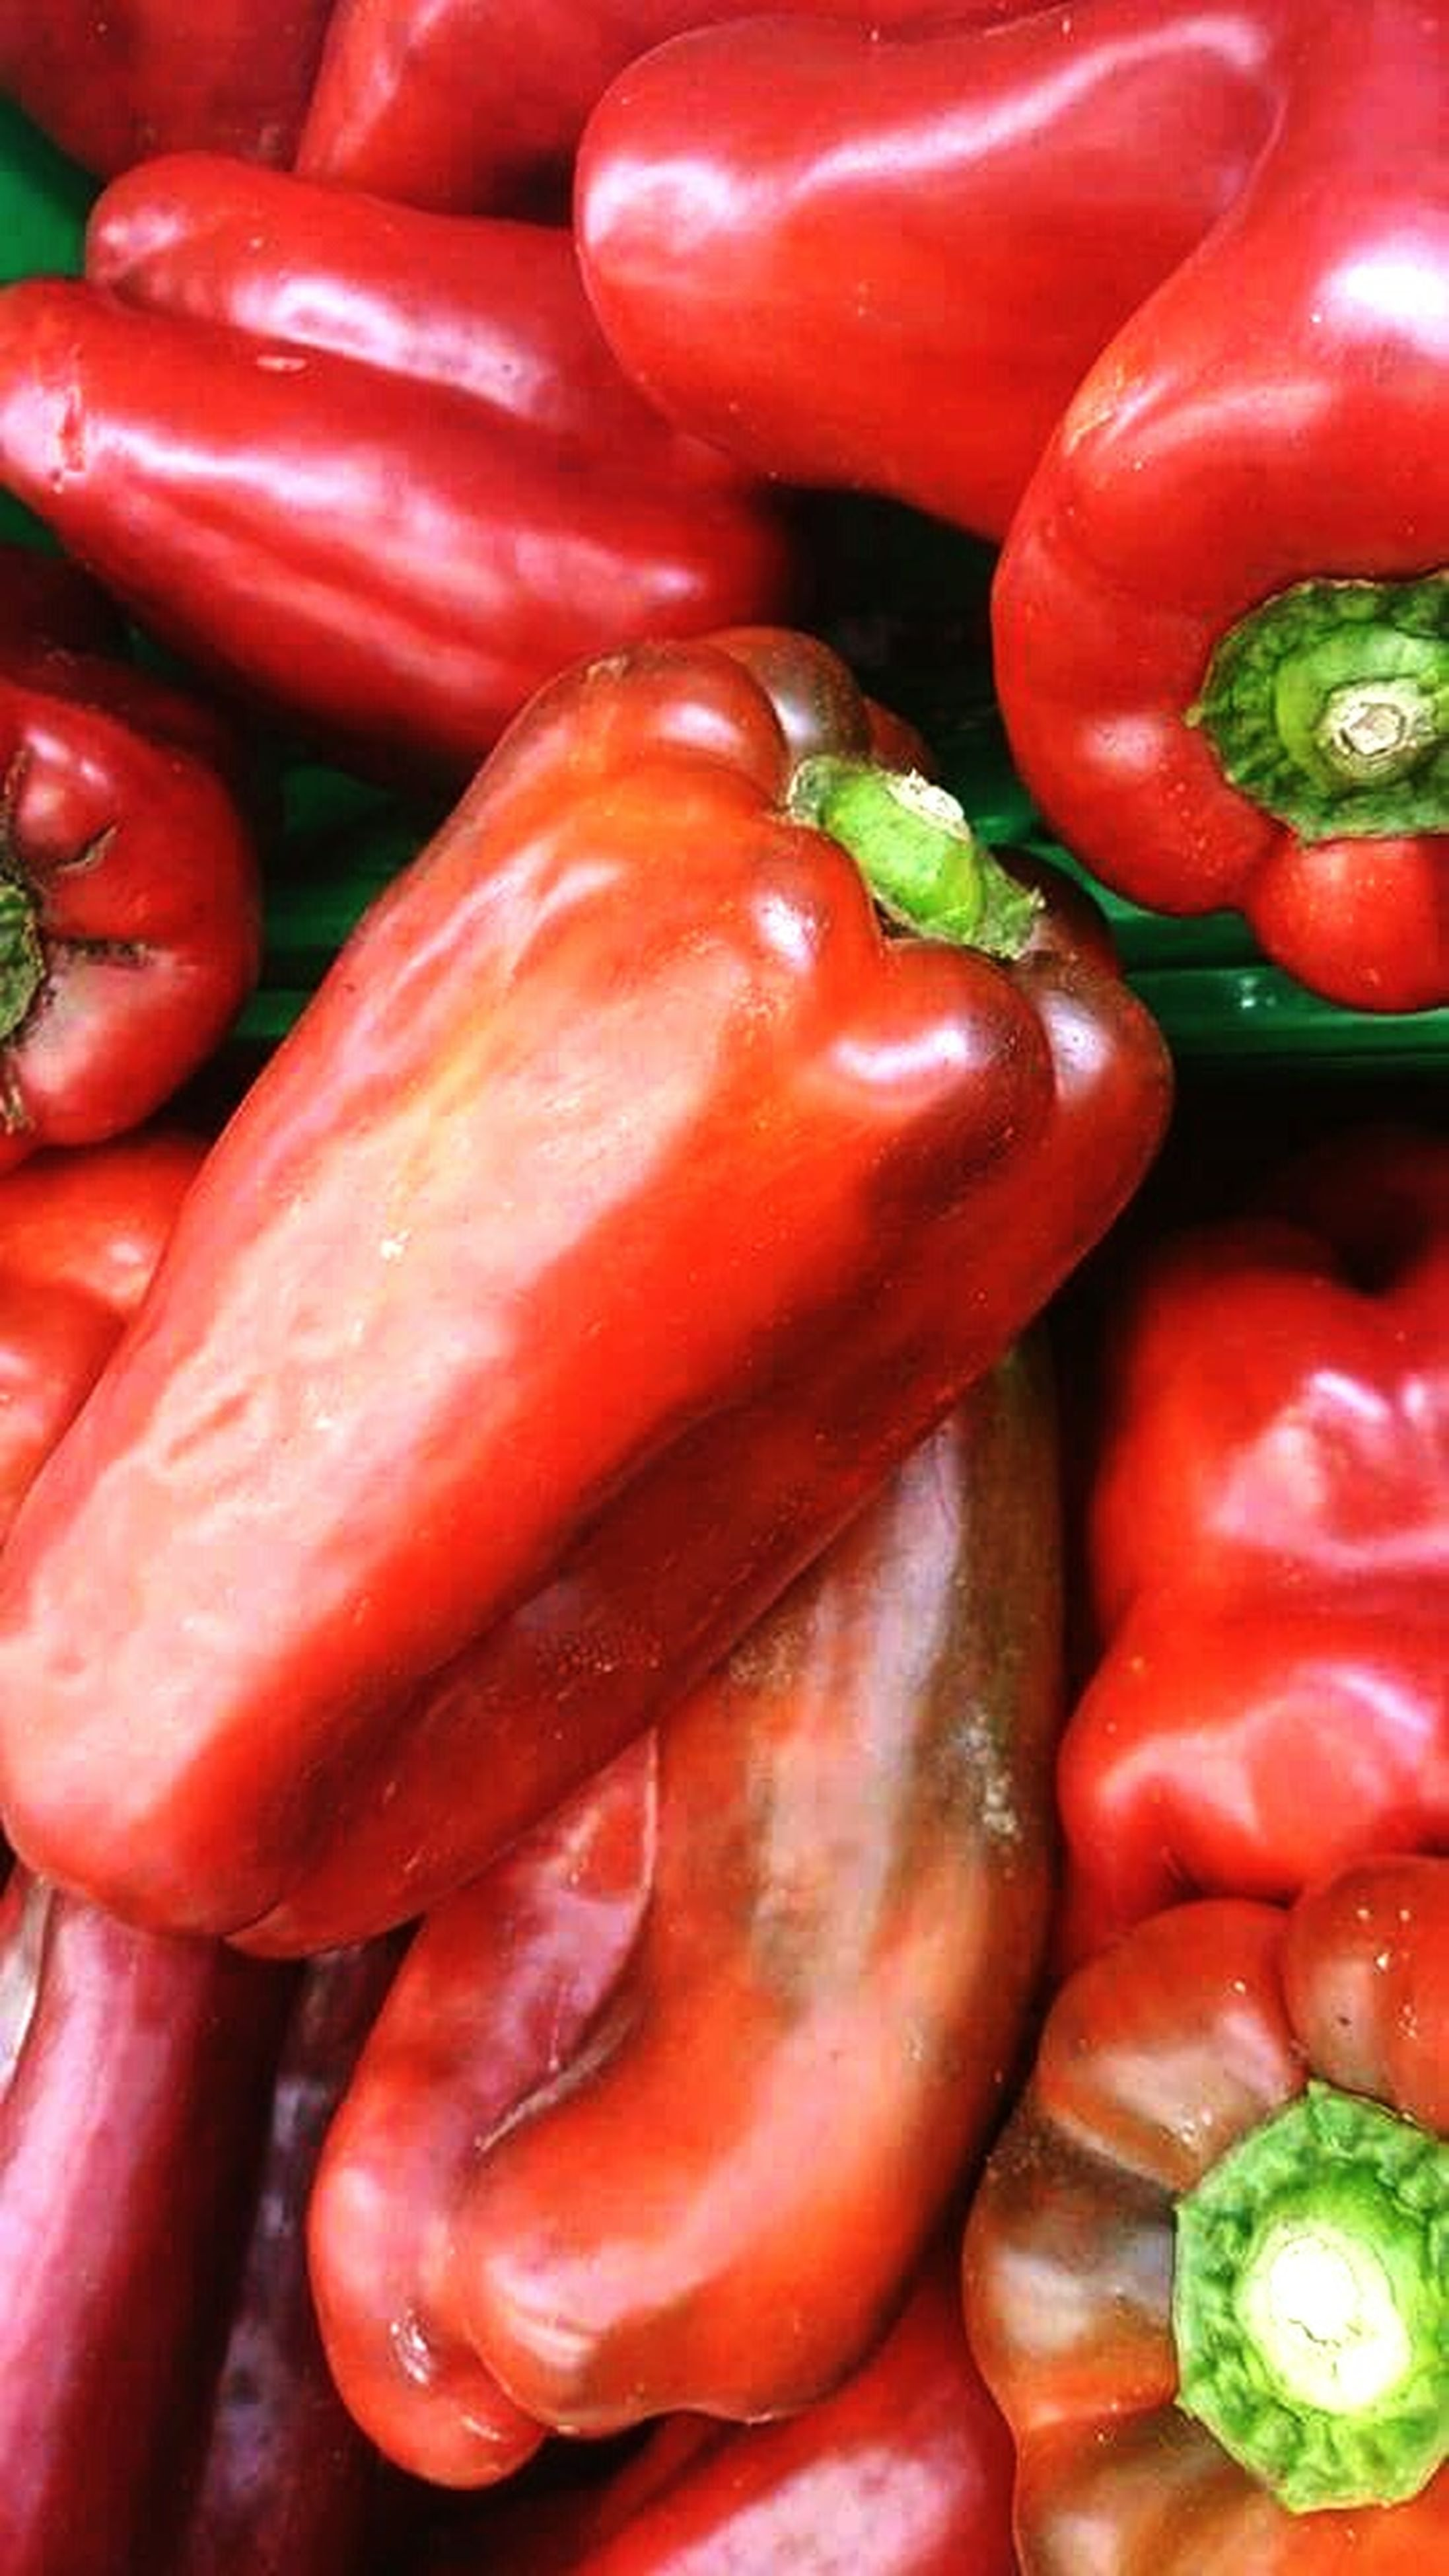 food and drink, healthy eating, red, food, freshness, vegetable, full frame, backgrounds, still life, tomato, large group of objects, abundance, bell pepper, red bell pepper, chili pepper, red chili pepper, indoors, close-up, for sale, raw food